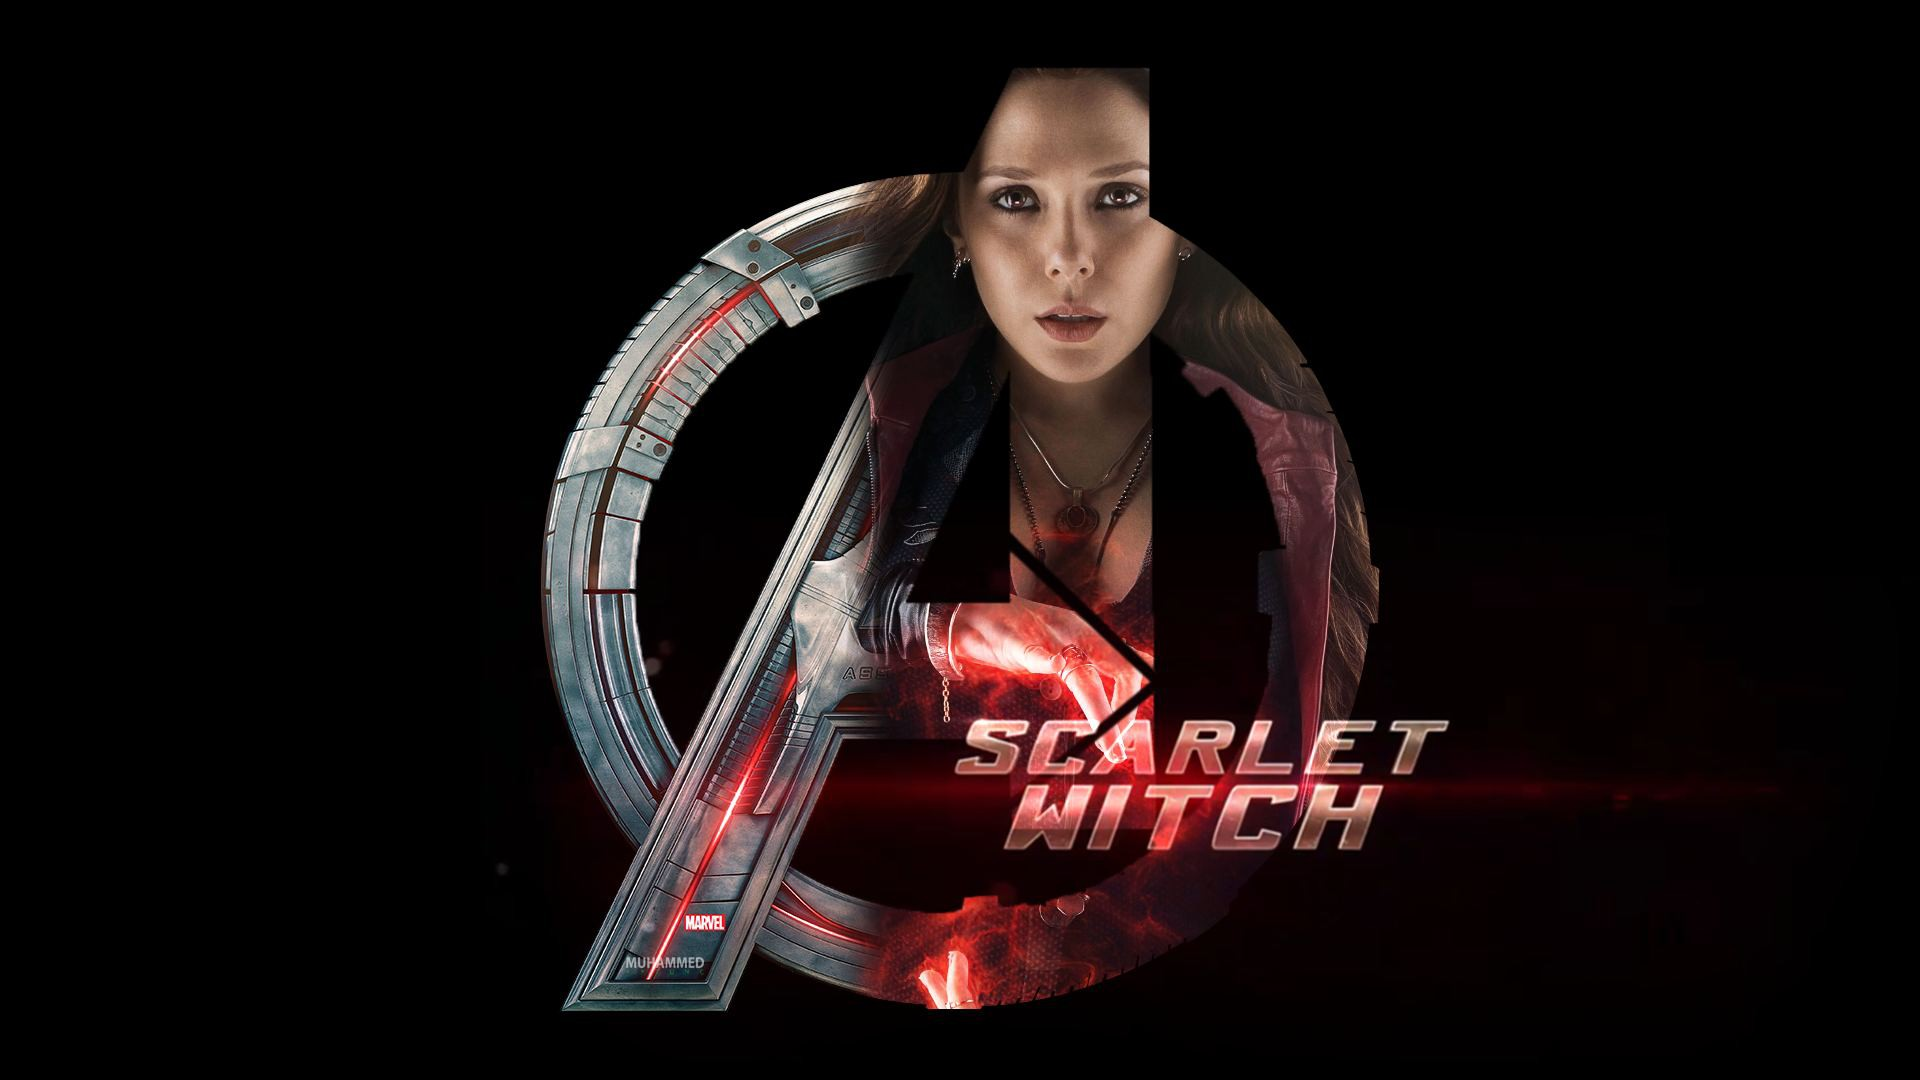 scarlet witch wanda maximoff marvel avengers super hero hd wallpaper